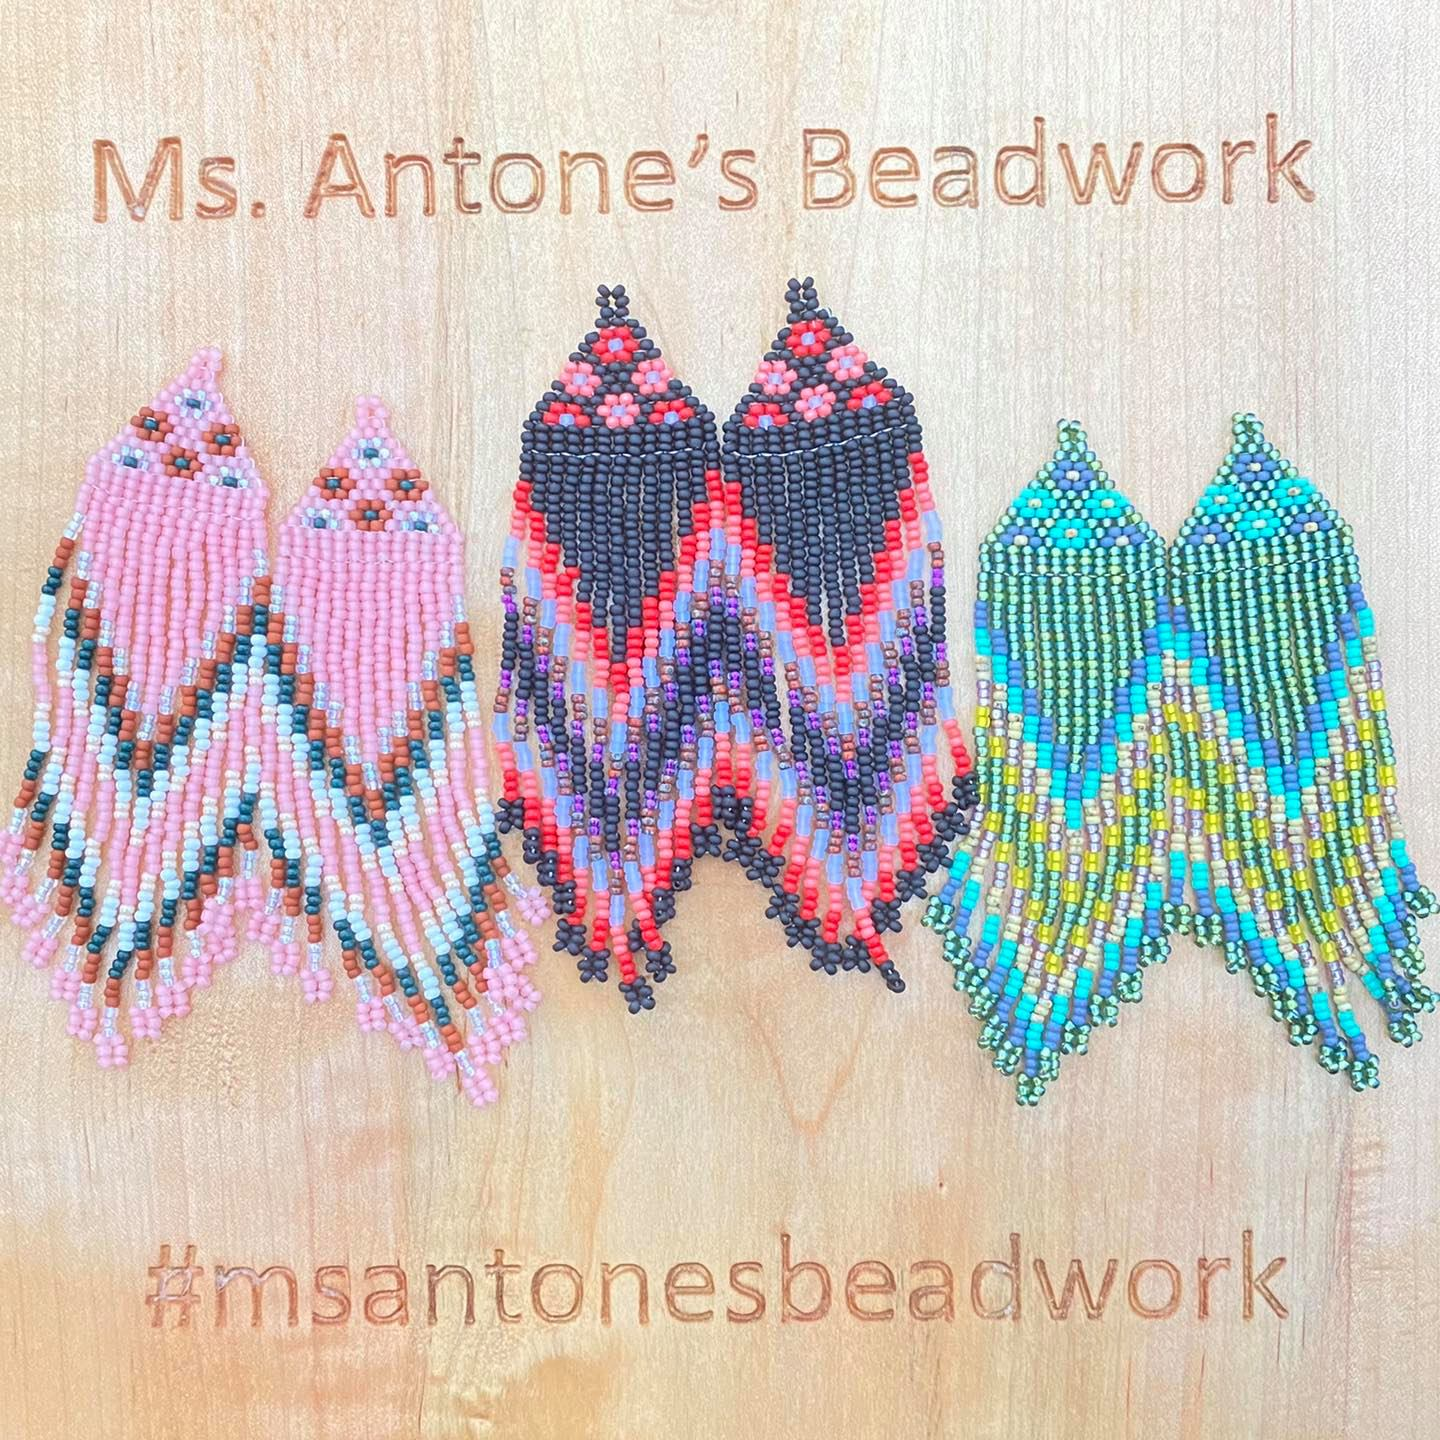 Three pairs of long beaded earrings sit on a wood board enrgaved with Ms. Antone's Beadwork.